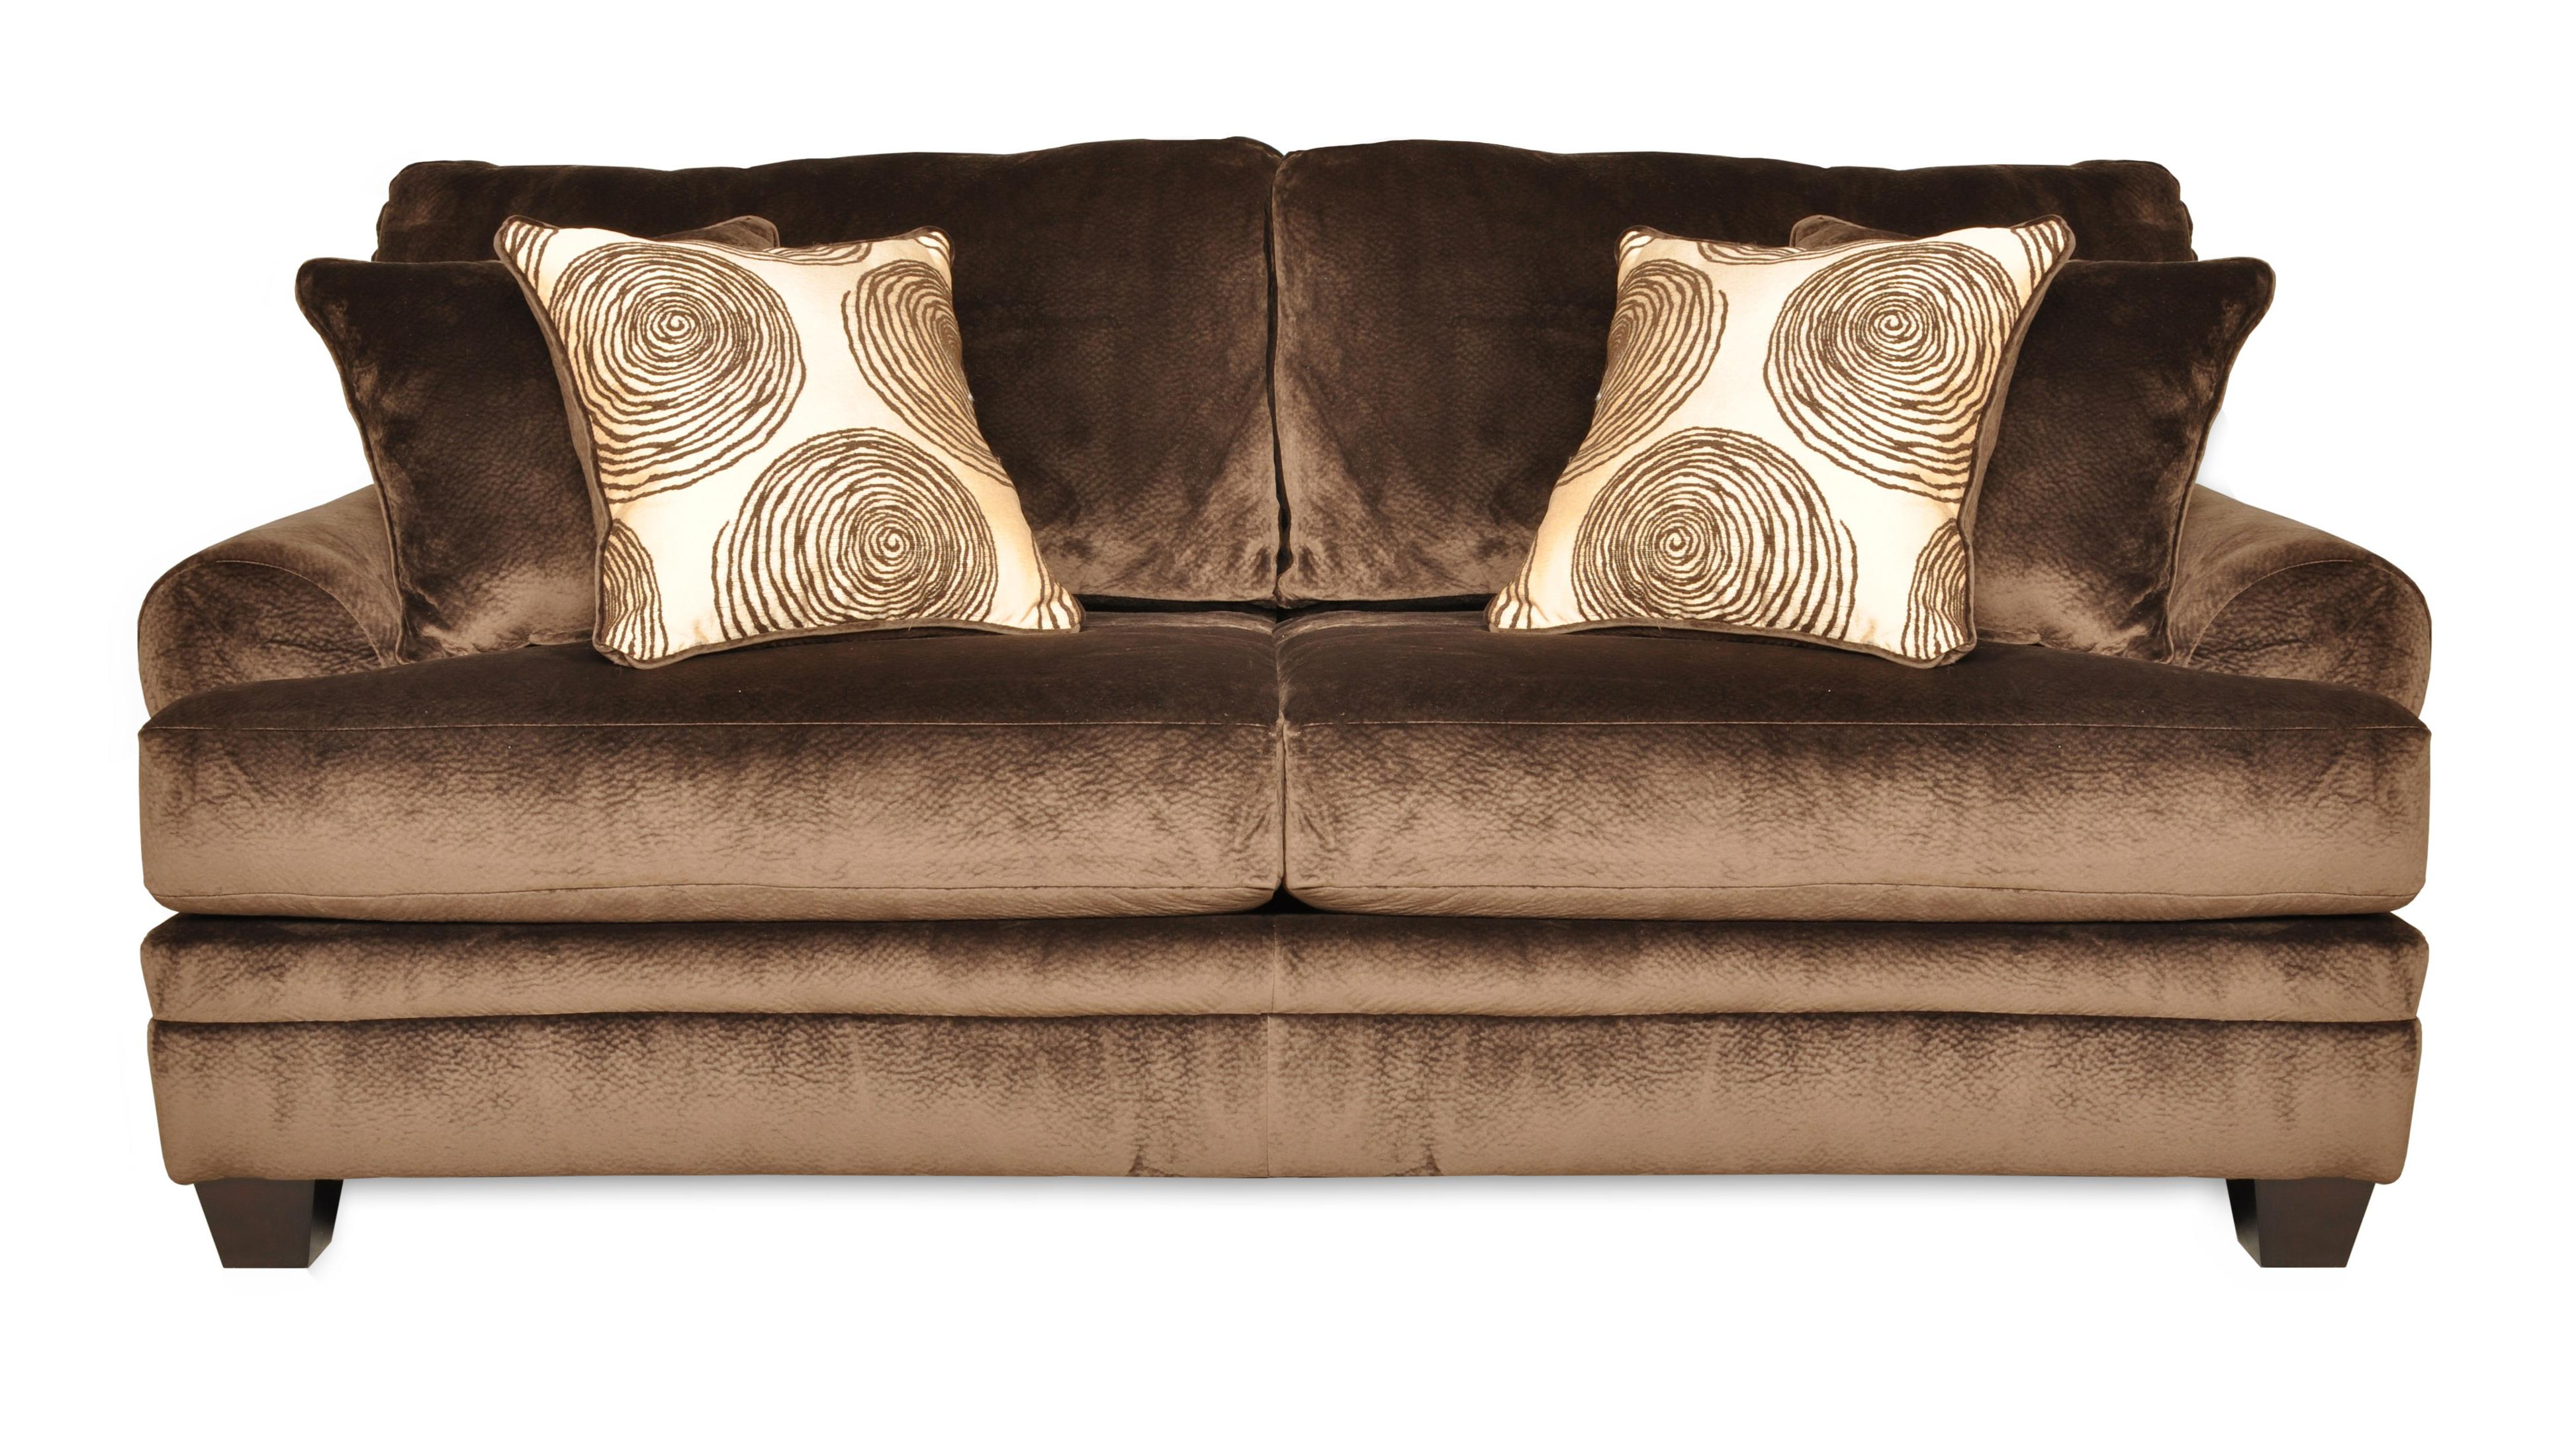 Albany 8642 Transitional Stationary Sofa   Item Number: 8642 00 GENS 35218